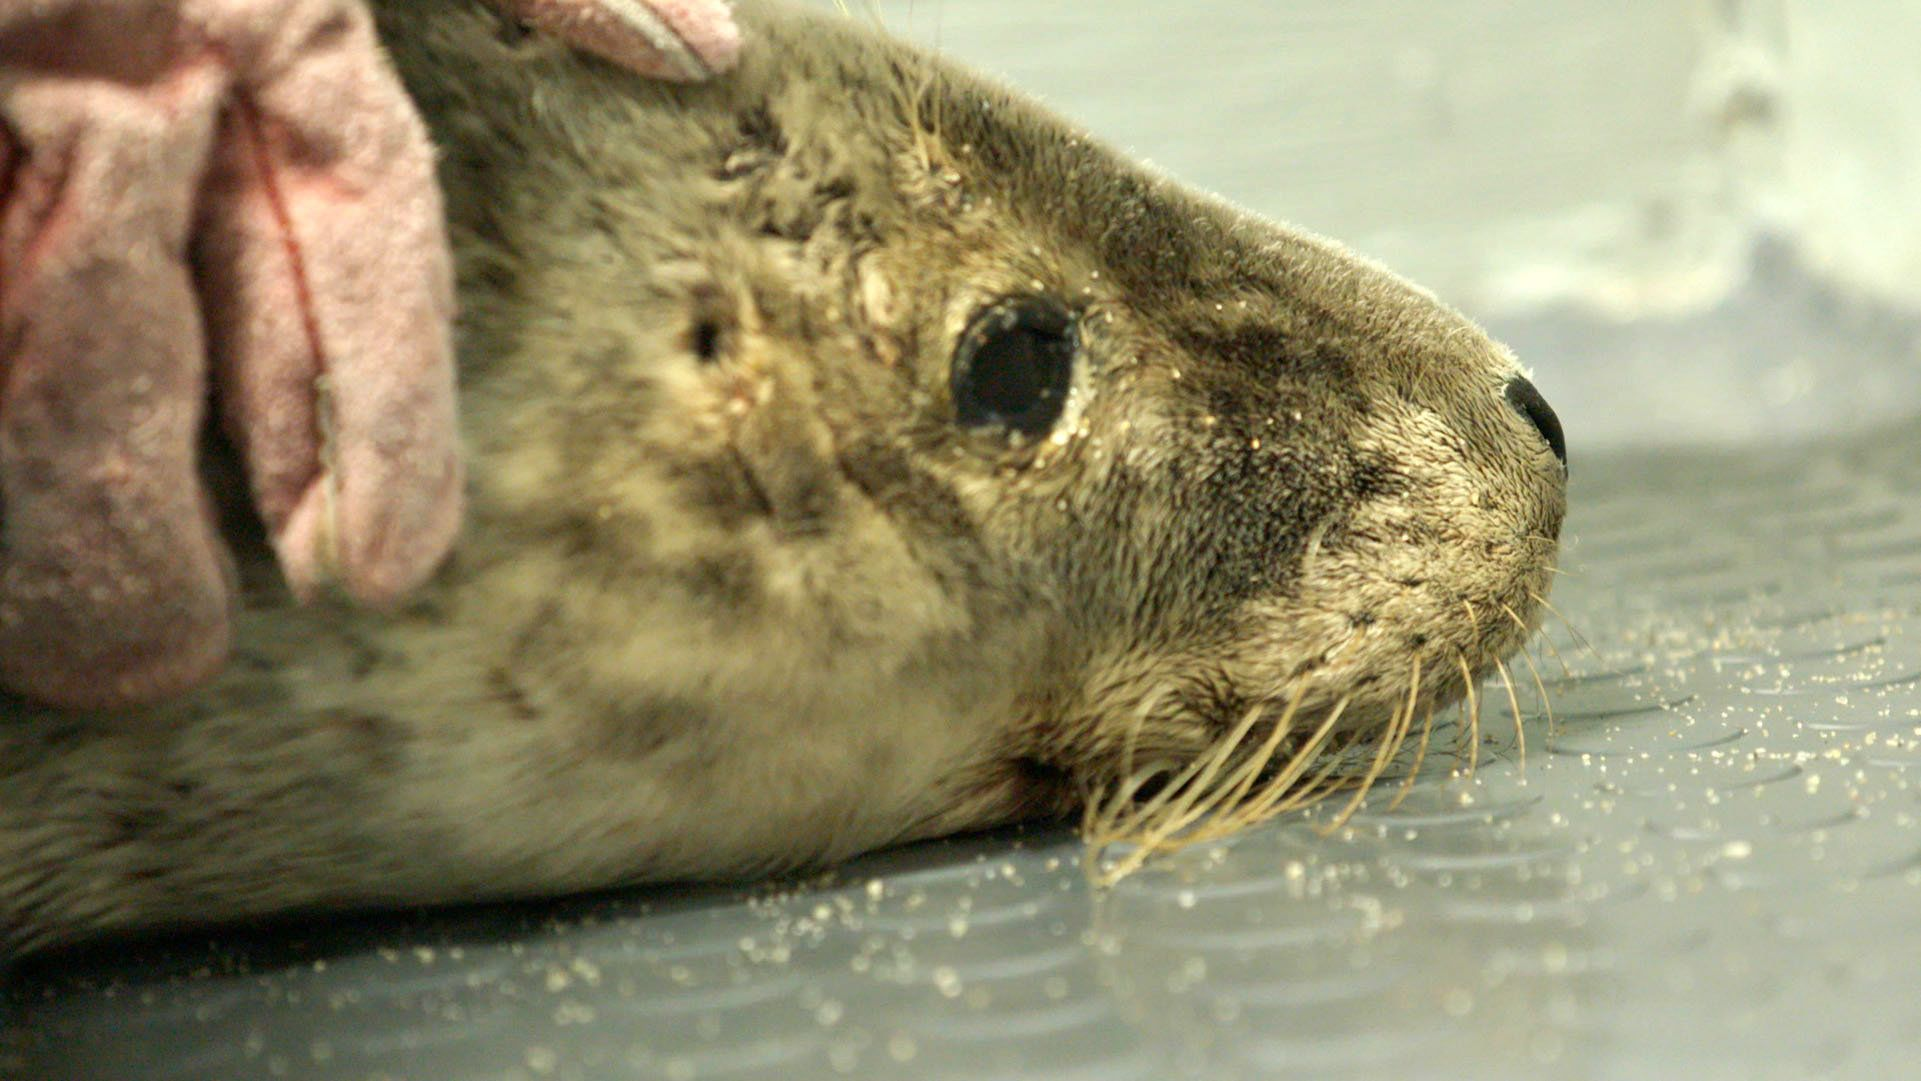 Baby seals often get netting caught round their neck which later strangles them when they grow